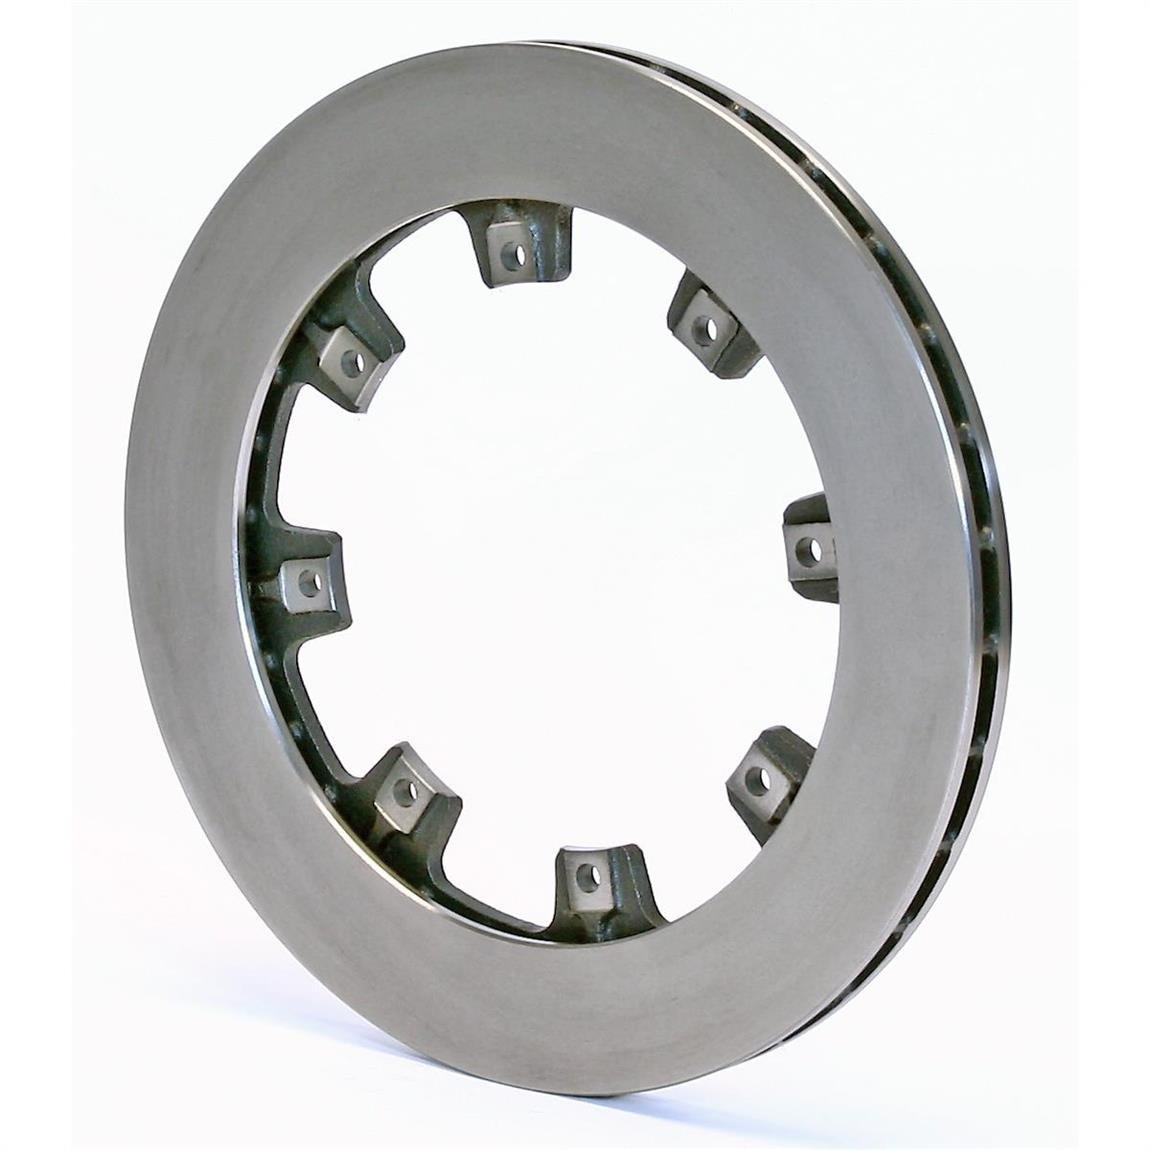 Wilwood 160-0277 .810 X 12.19 X 7 8 Bolt Rotor for Ultralite